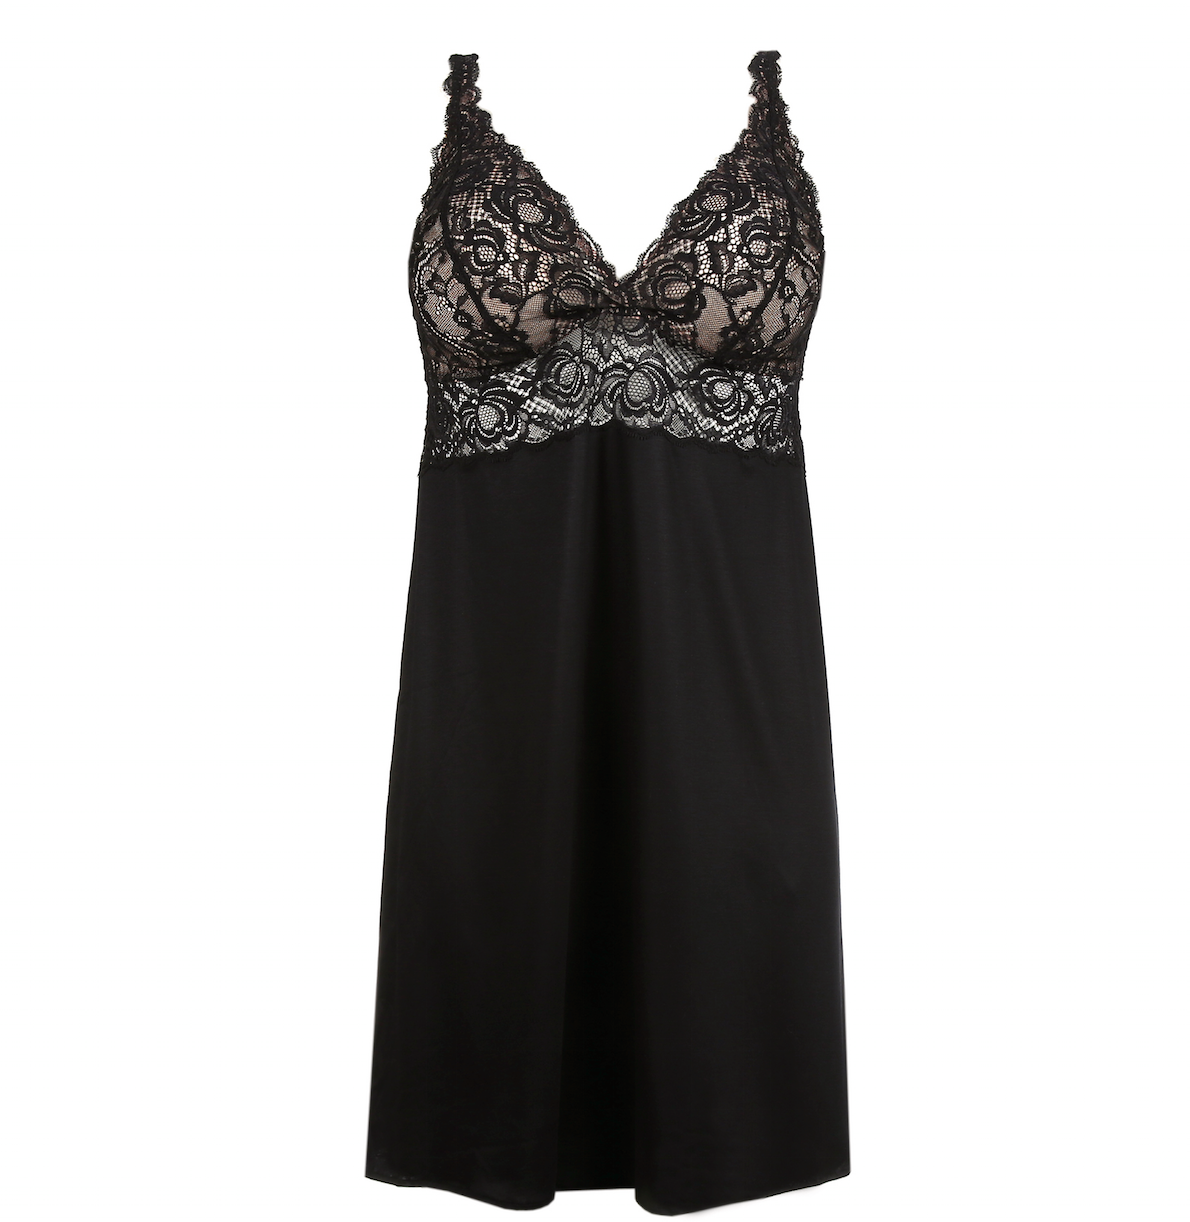 11 Nightgowns For Big Boobs Cute Nightgowns For Women With Large